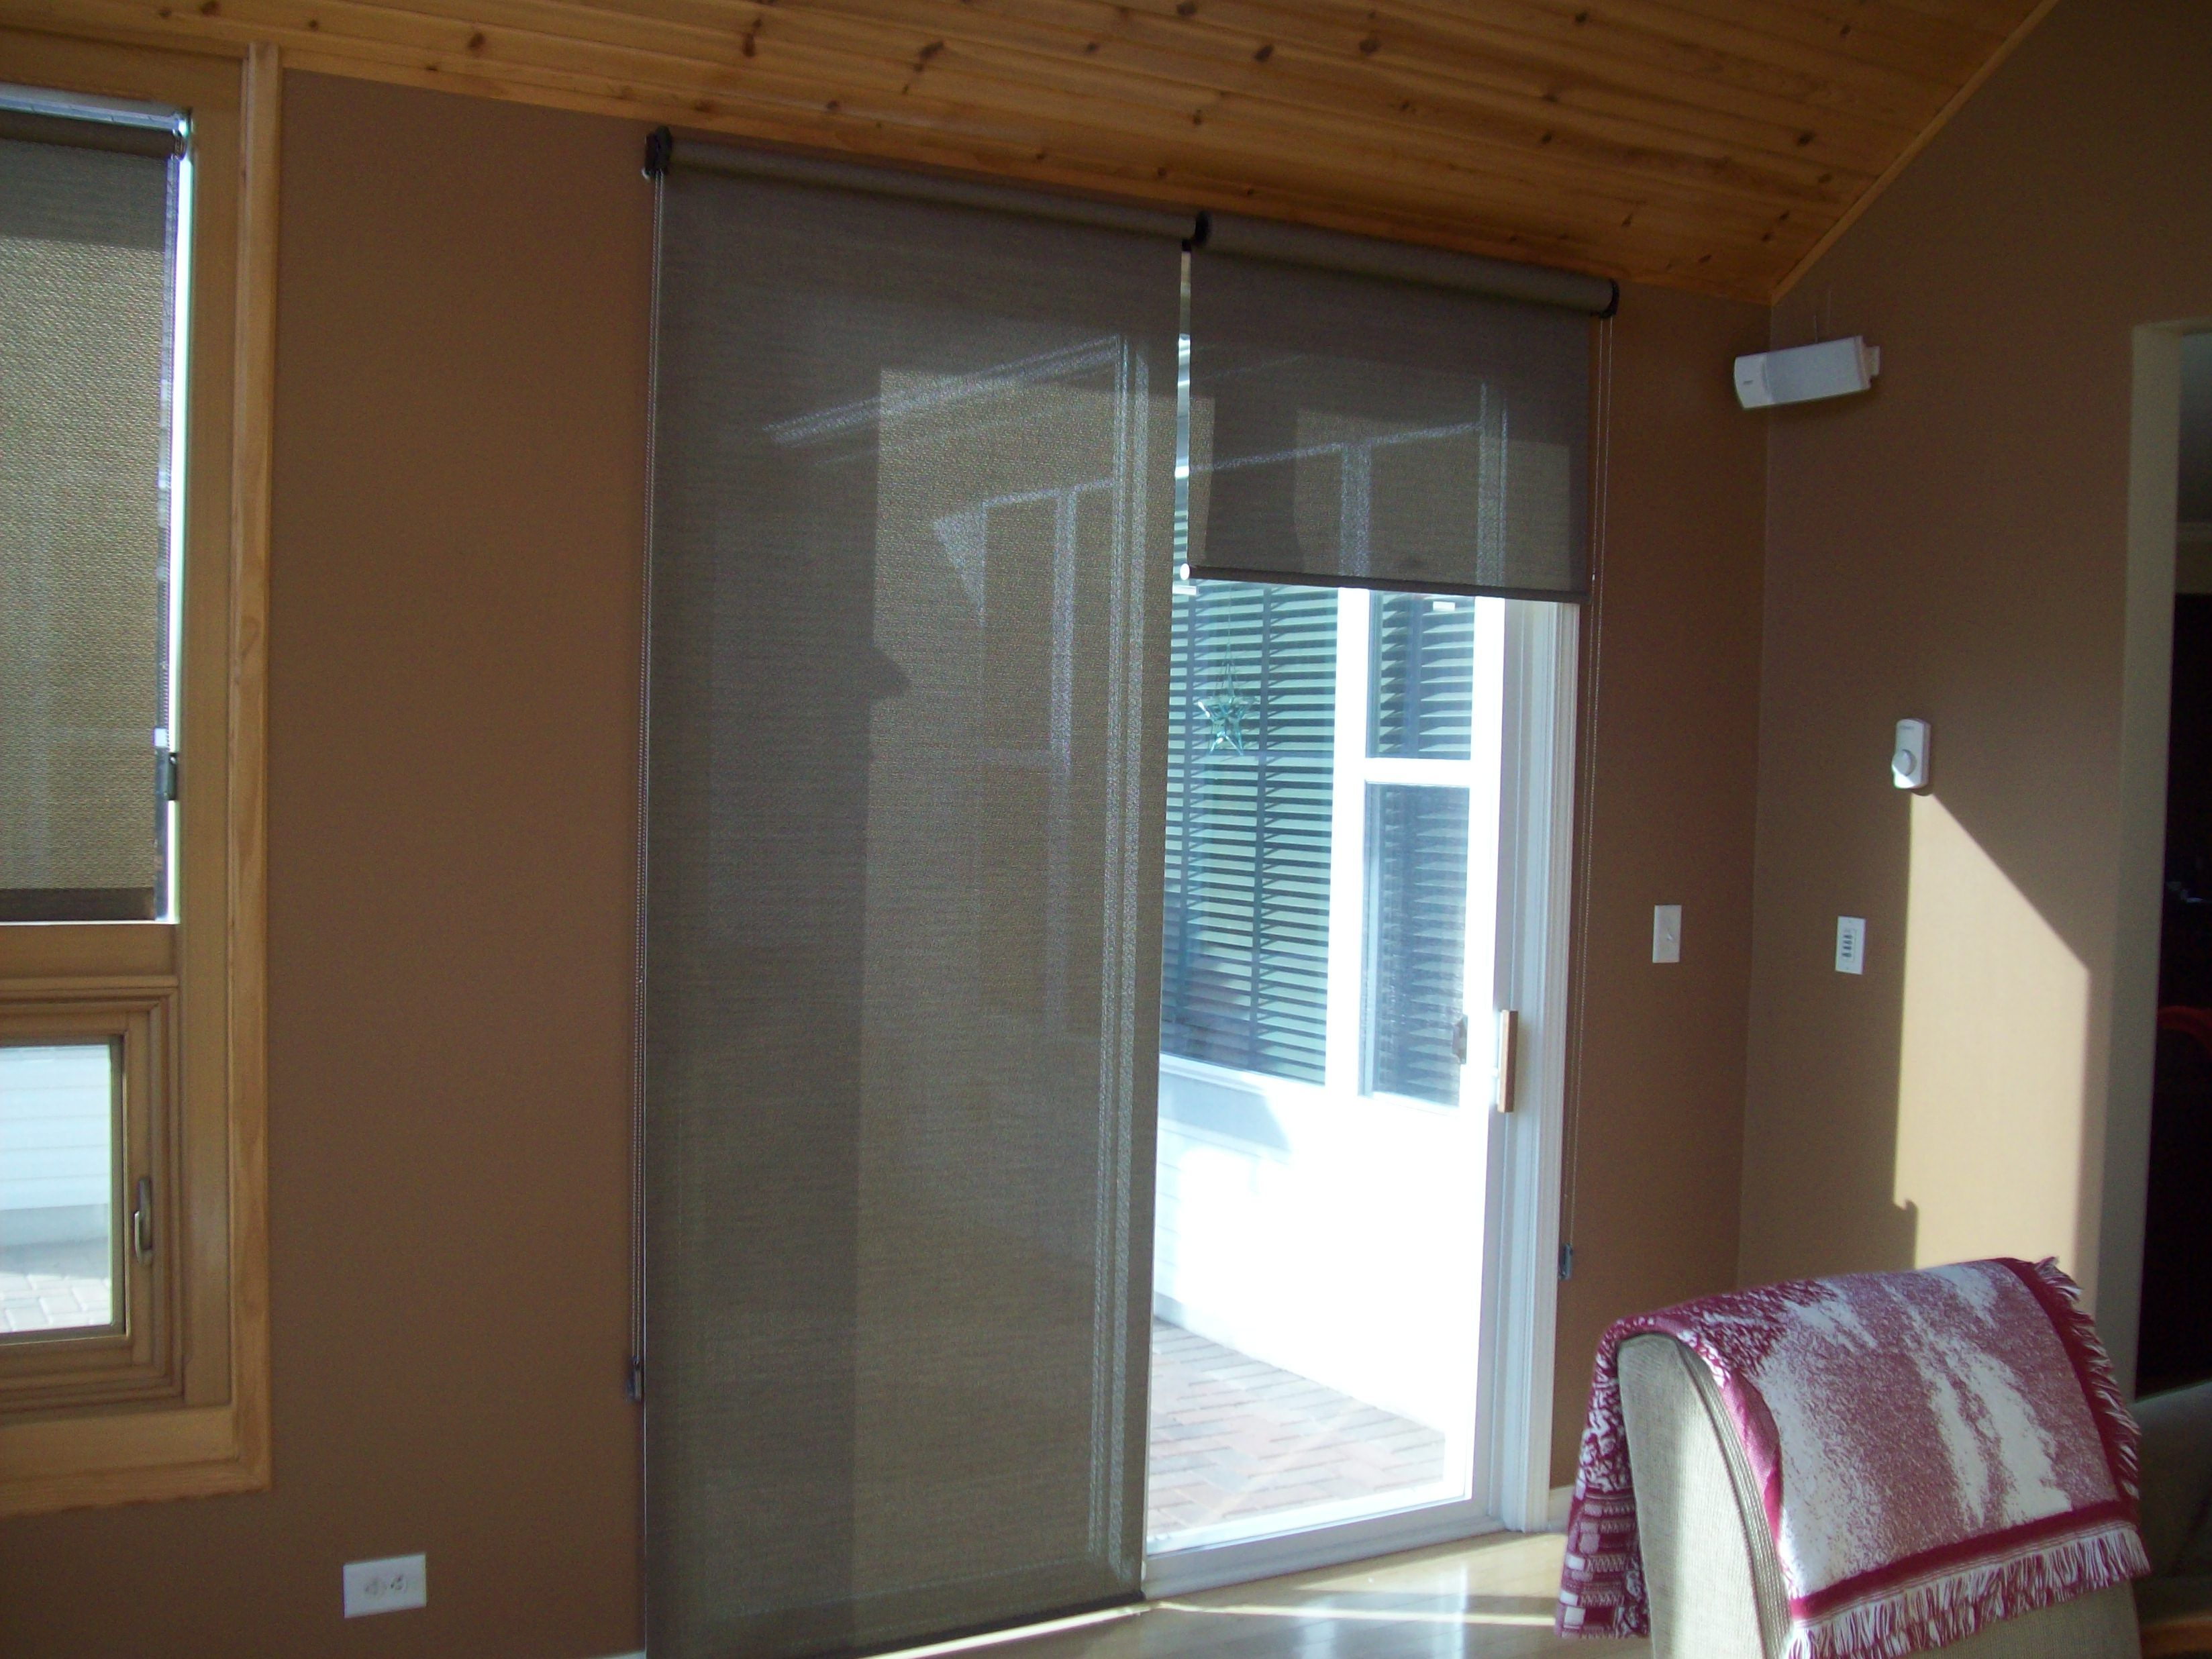 Roller Shades On Patio Door. One 1/2 Up To Give Idea Of Light